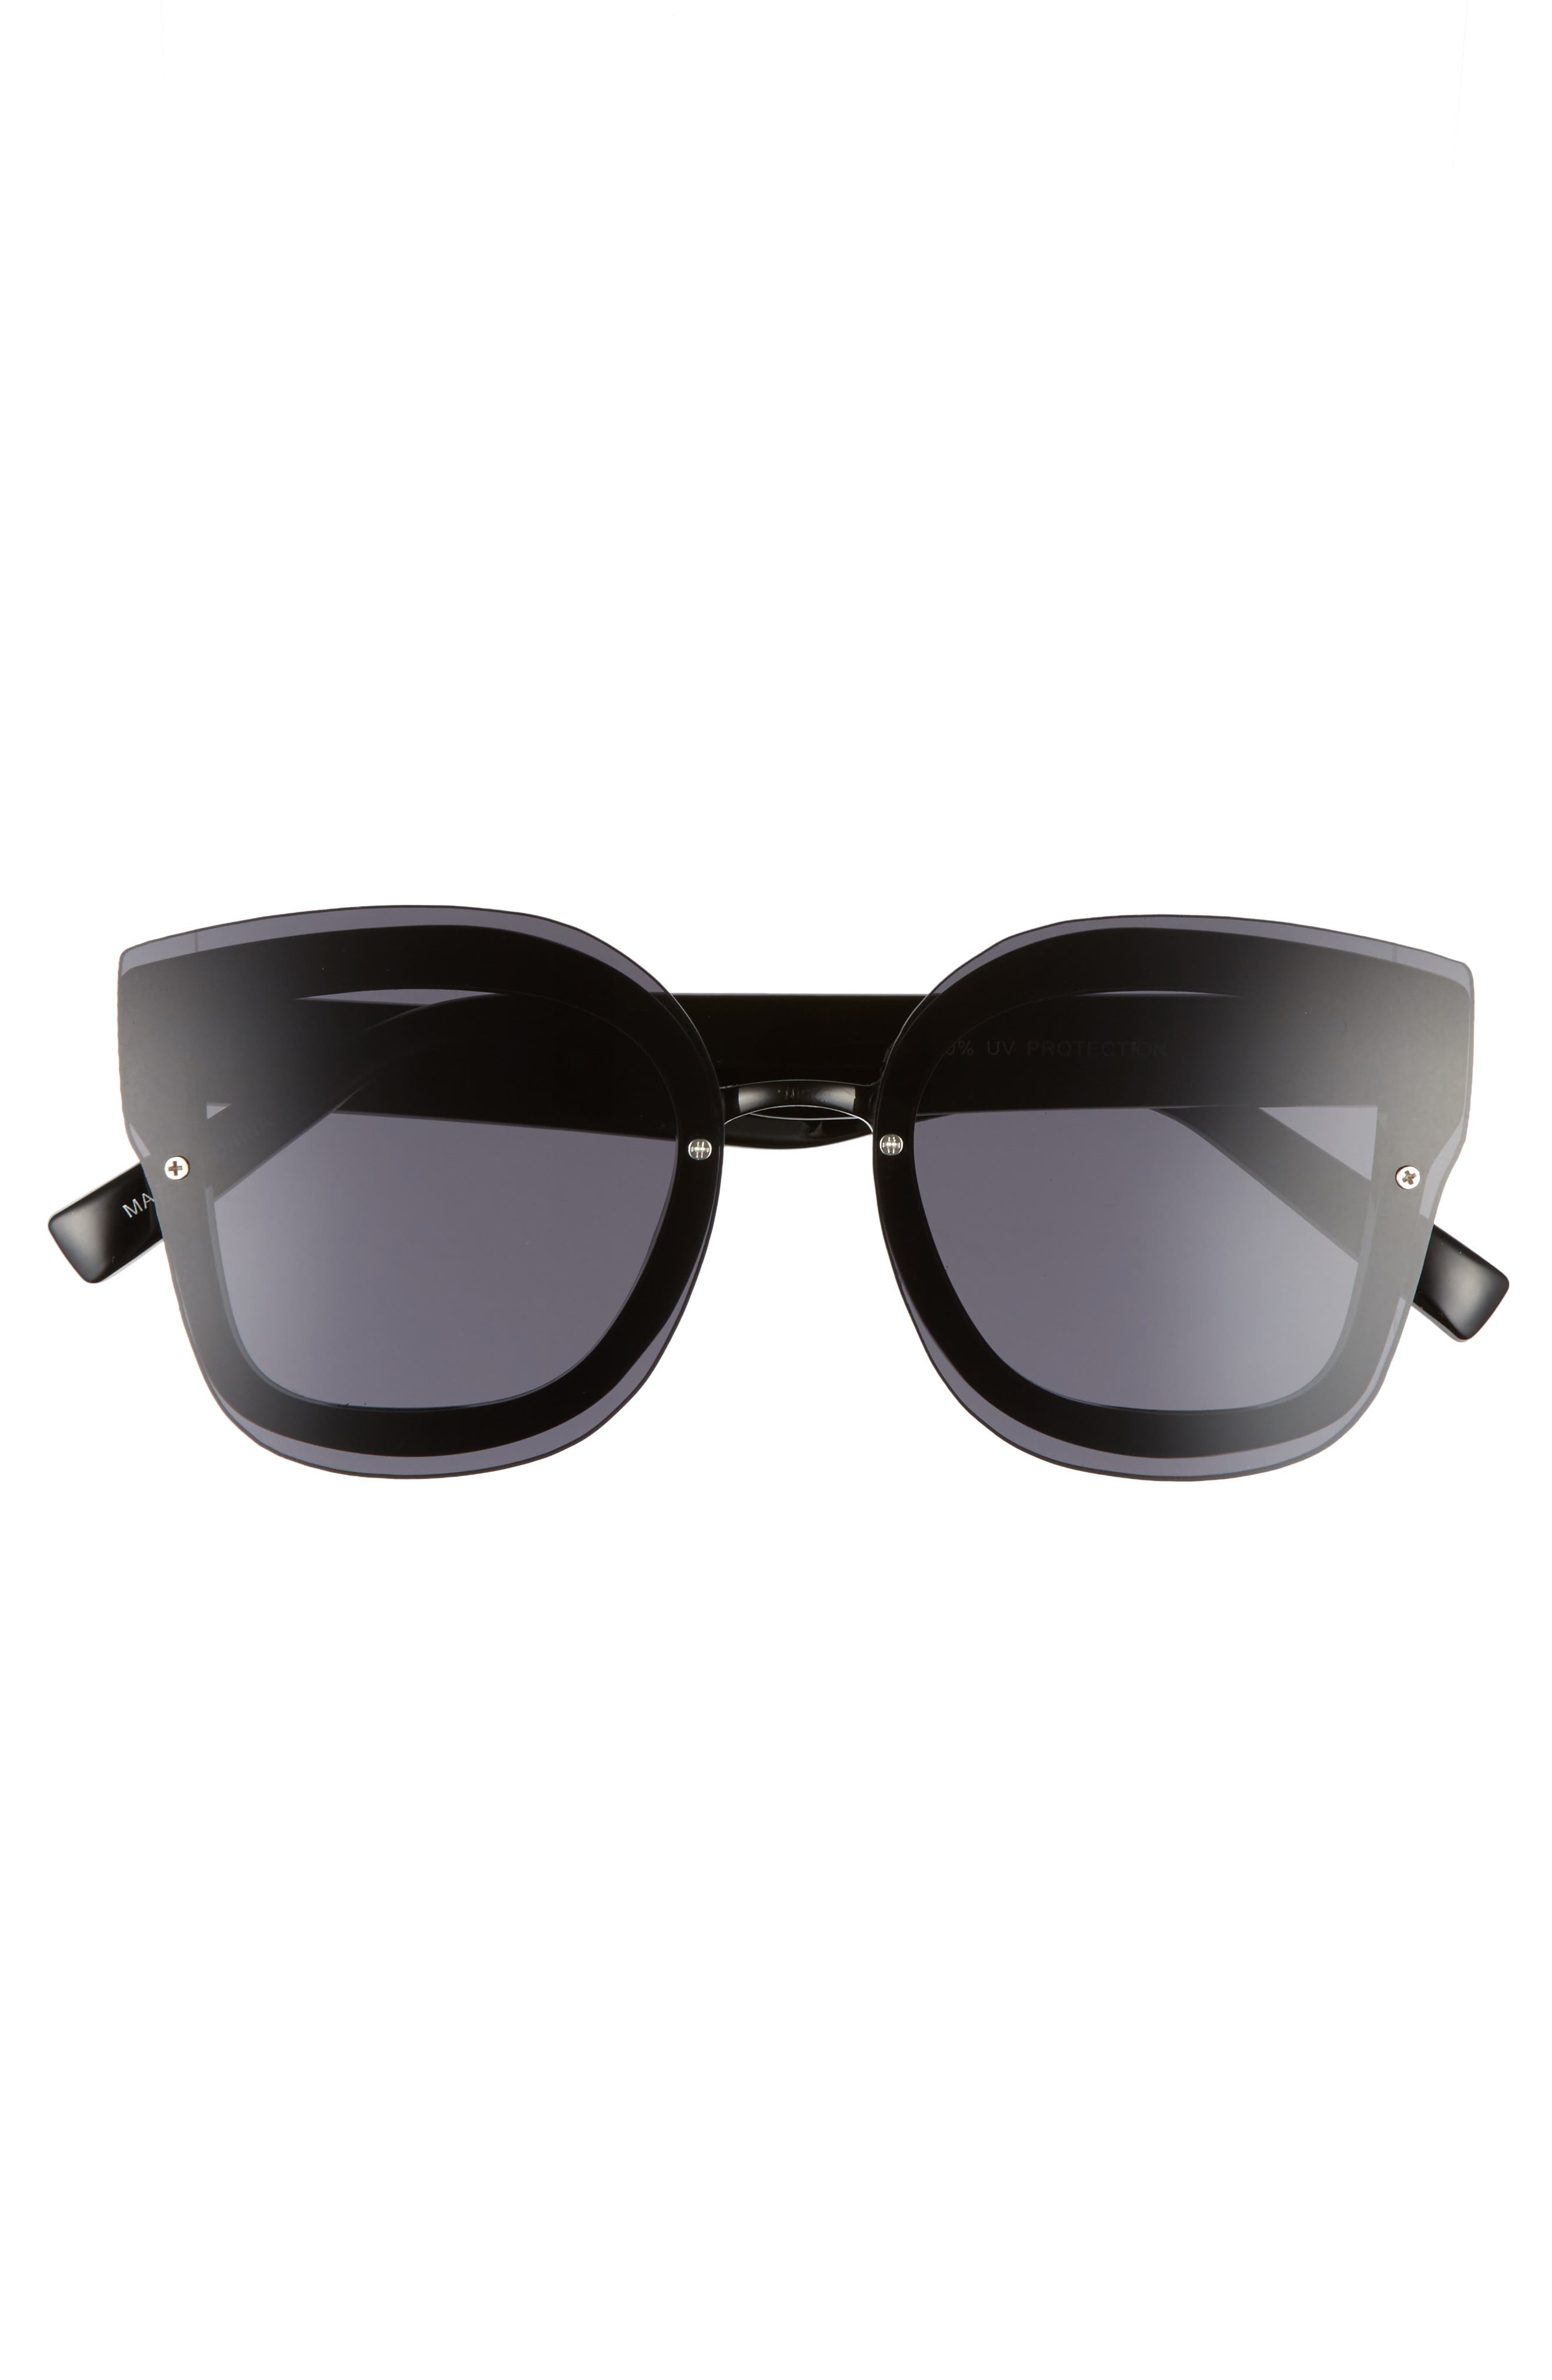 50mm Squared-Off Sunglasses,                             Alternate thumbnail 3, color,                             001